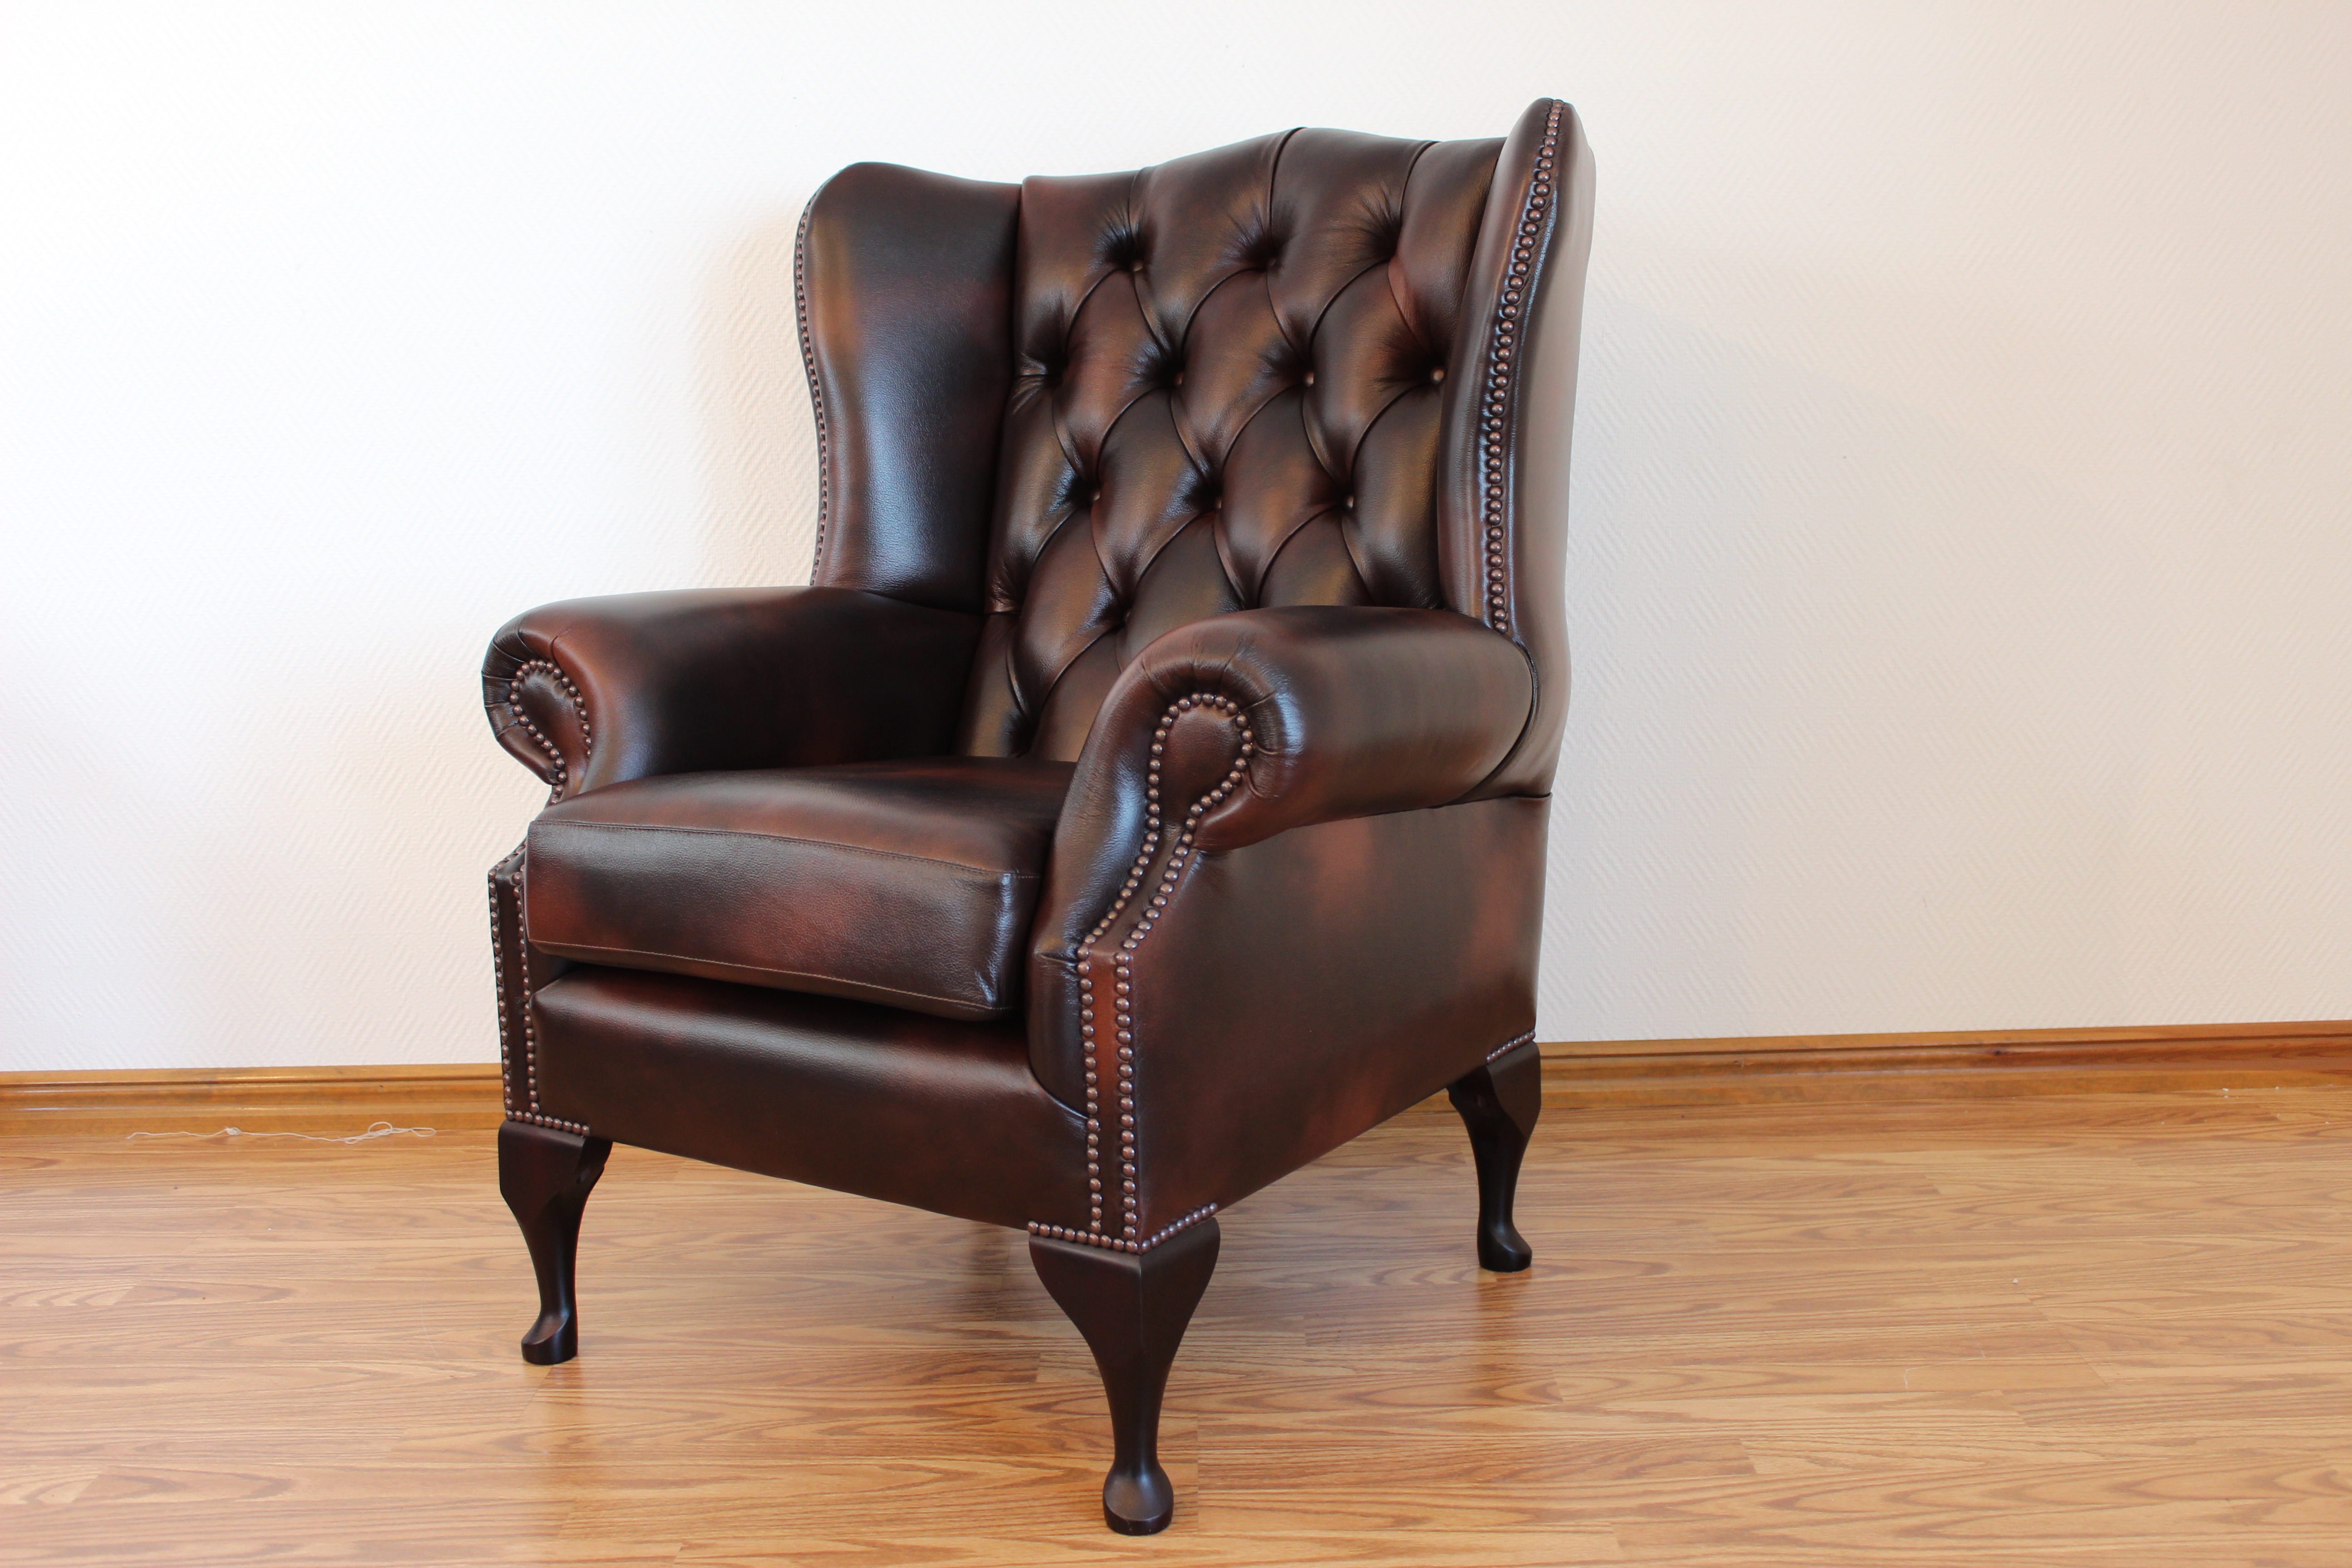 Lord II - Wingchair - Old English Leather